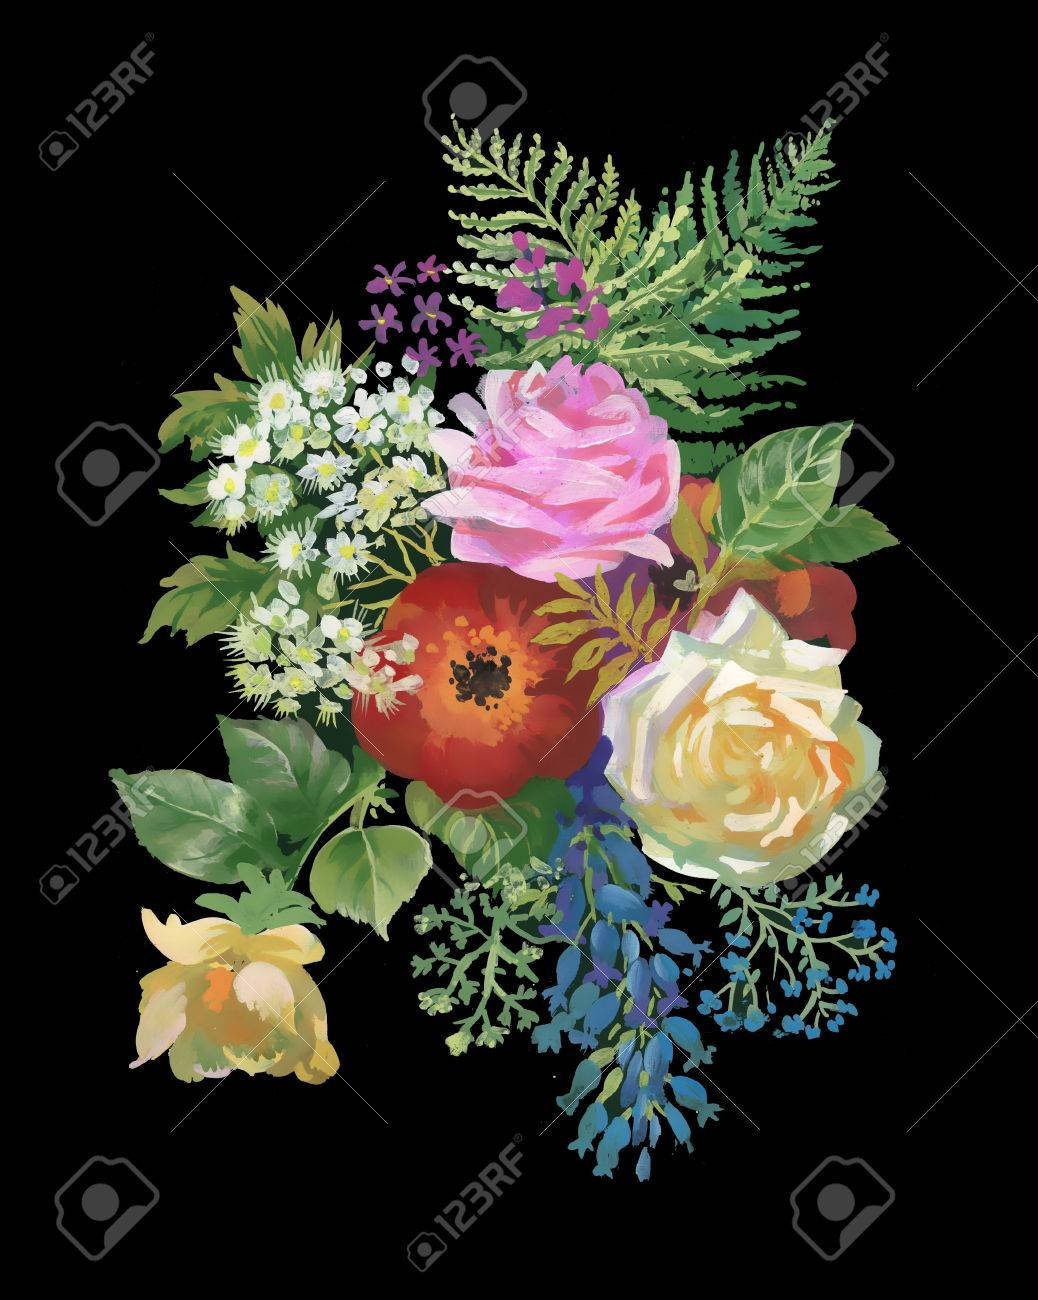 Watercolor Flowers Bouquet On Black Background Royalty Free